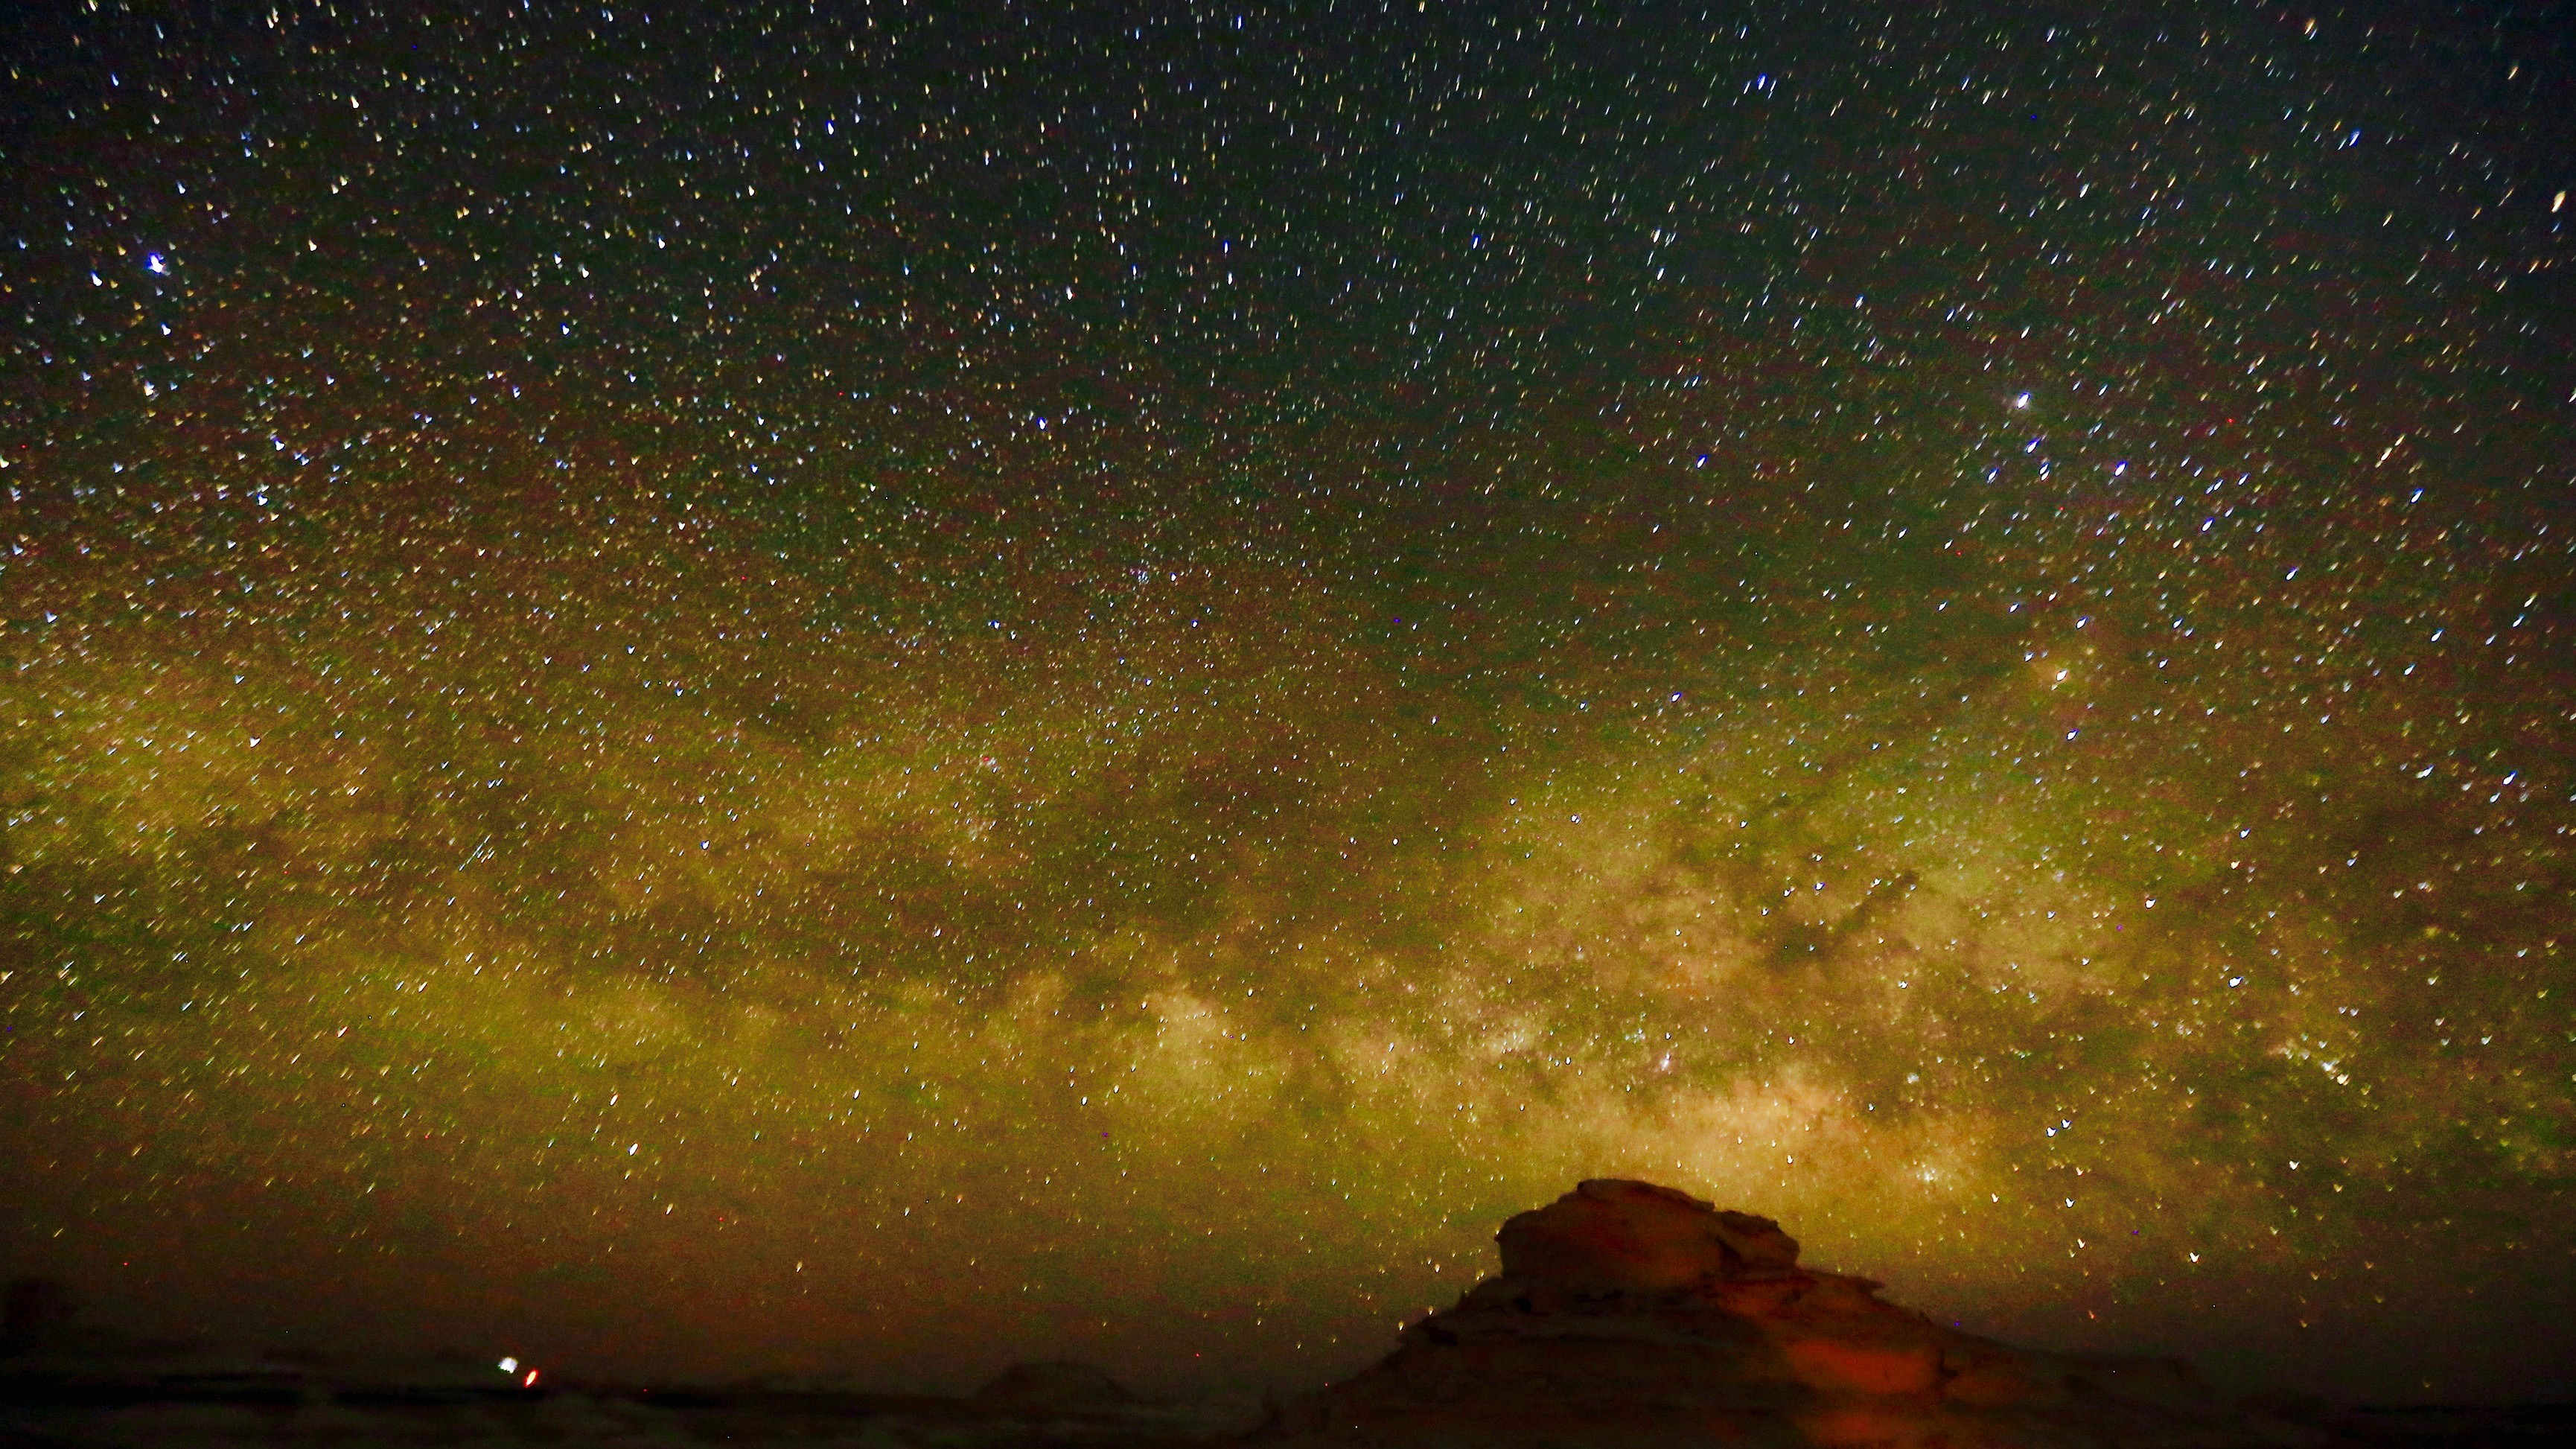 Milky Way at night over the desert.